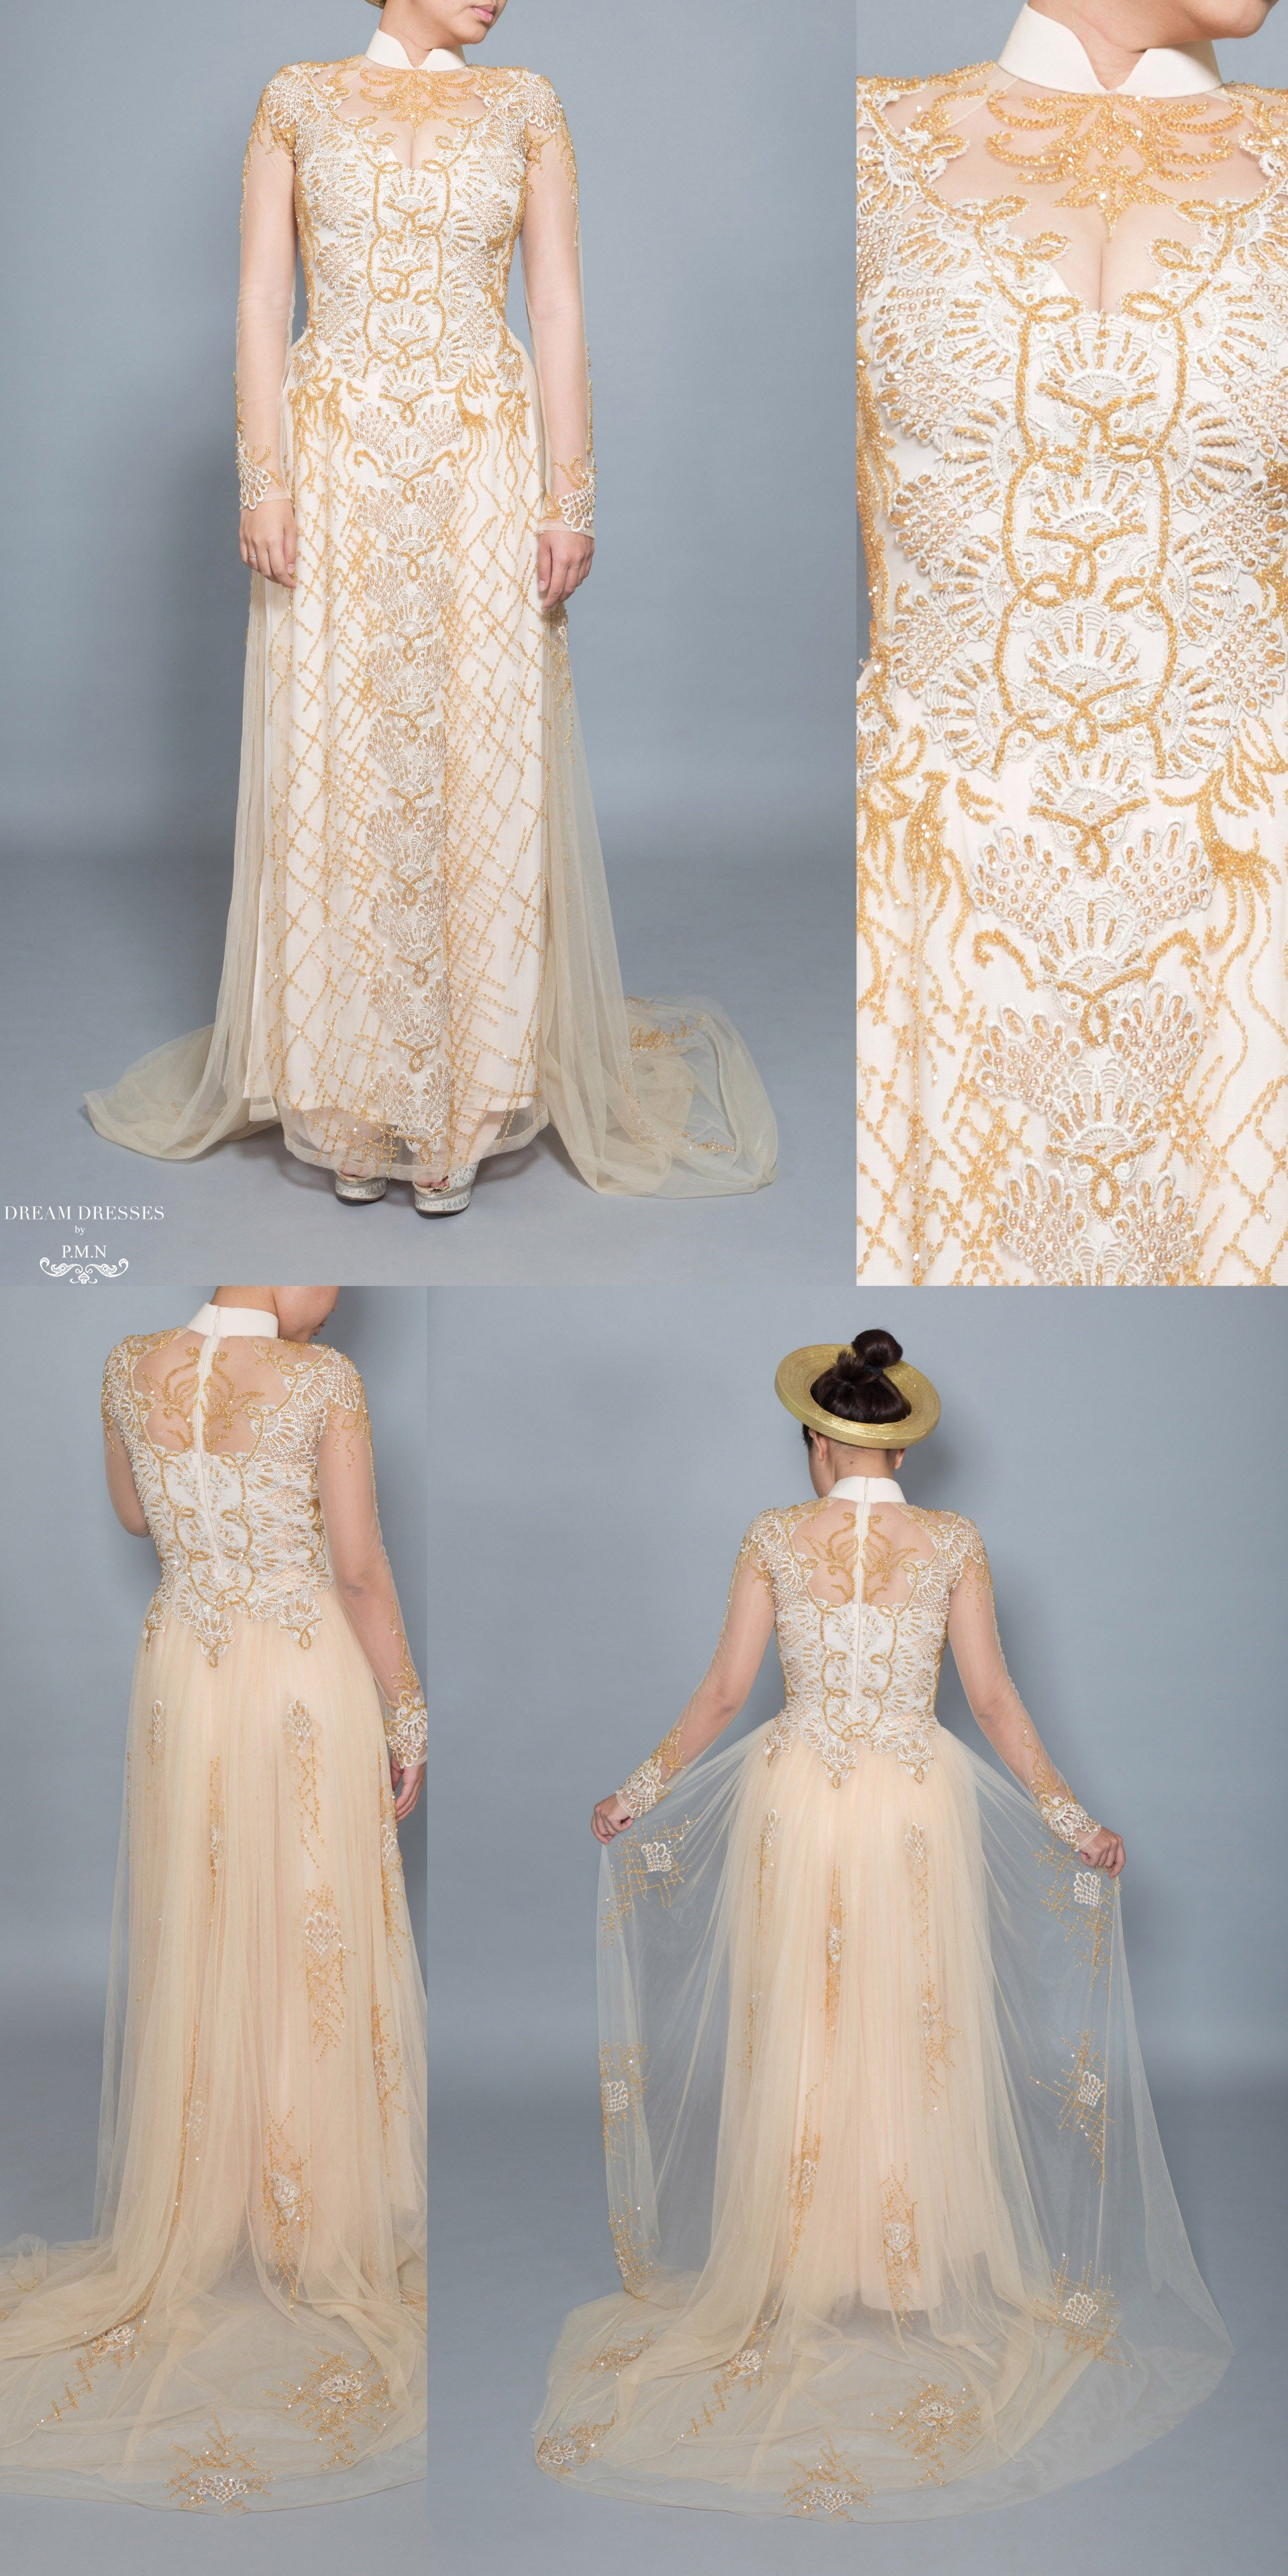 Gold Ao Dai Vietnamese Bridal Dress With Embellishment